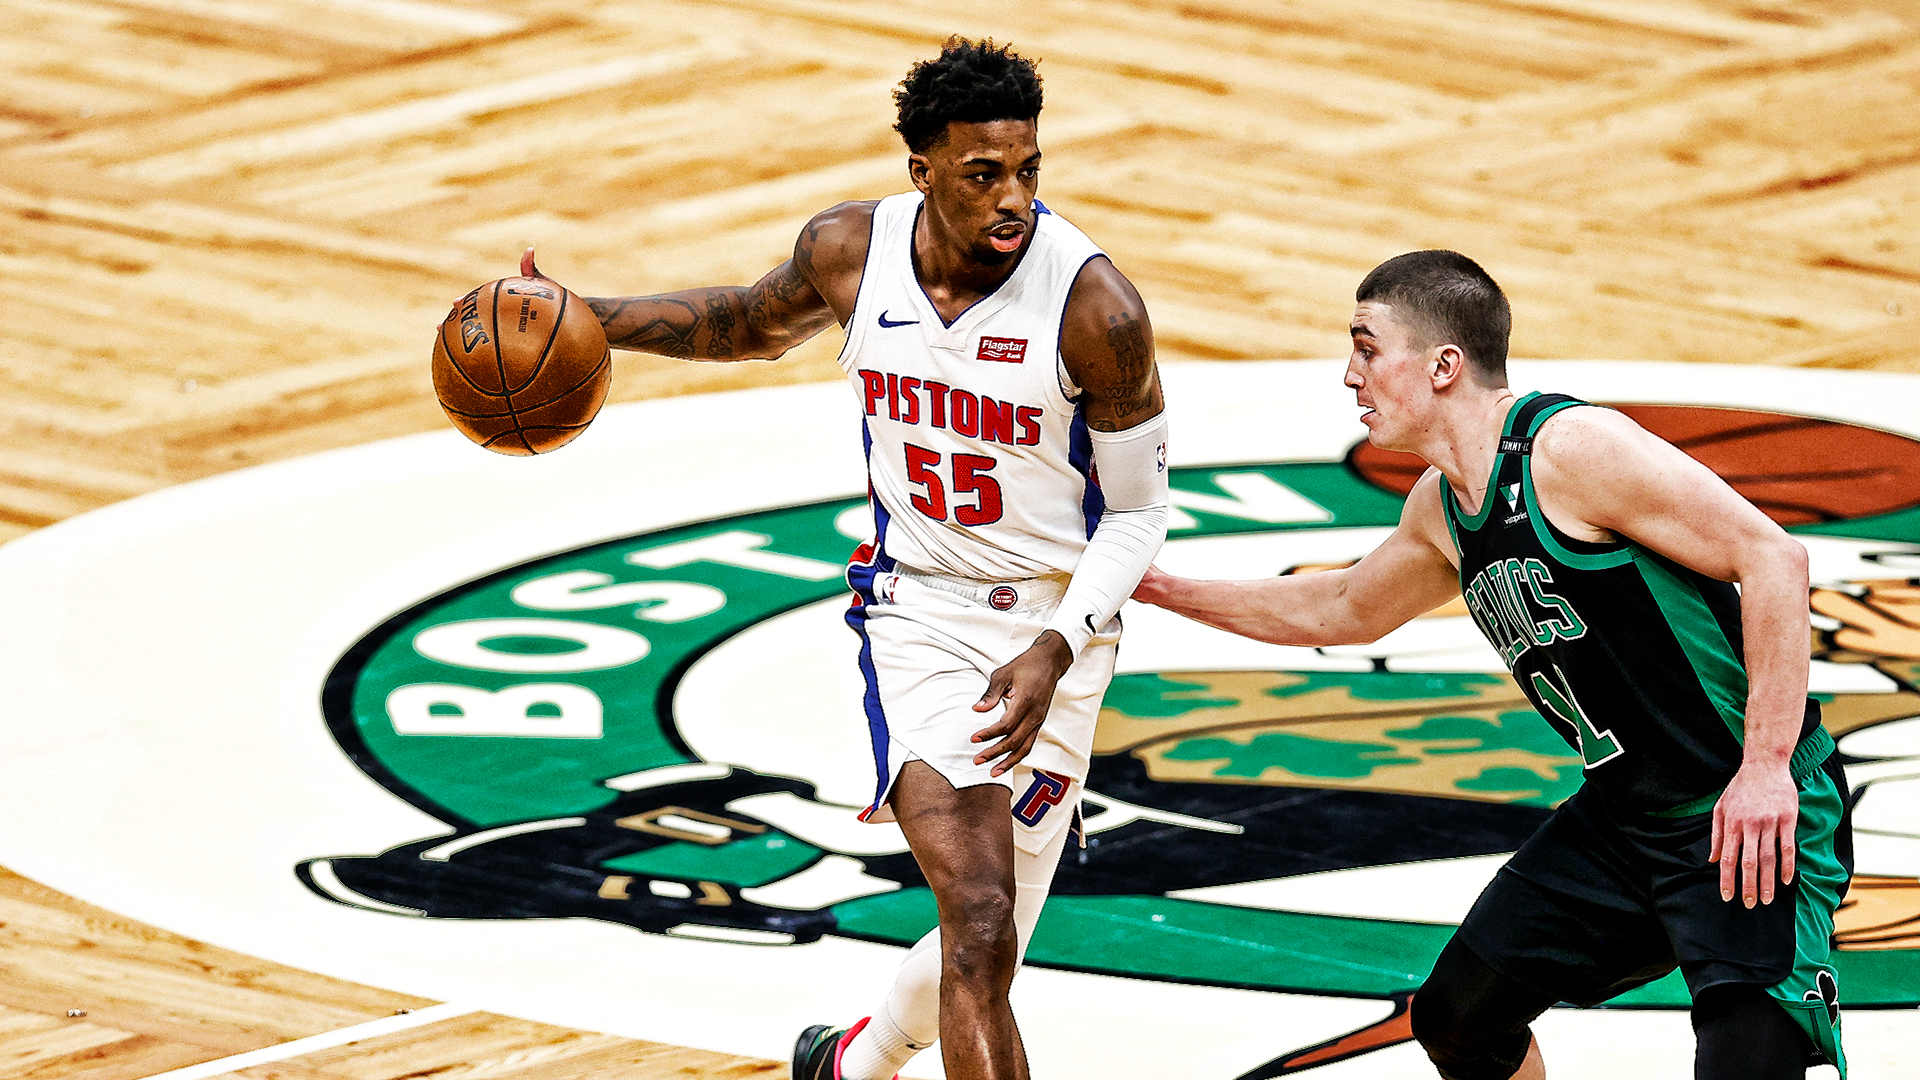 Pistons Playback, presented by Flagstar: Pistons at Celtics